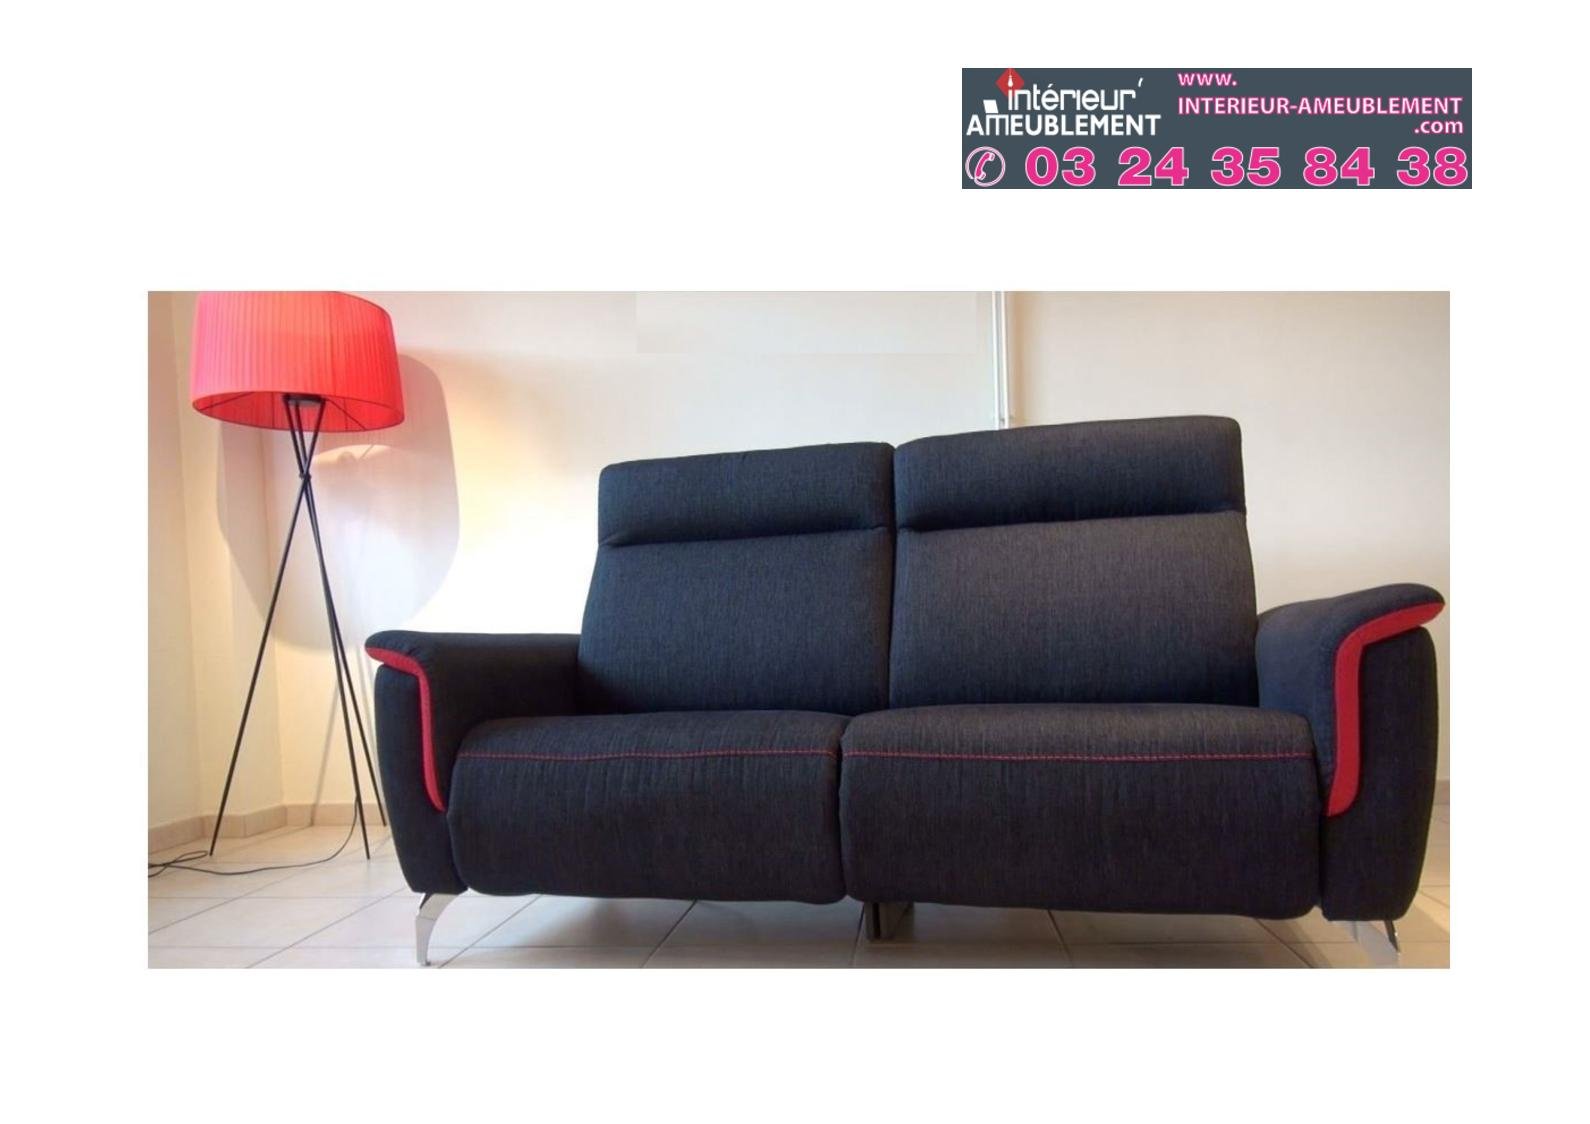 Calam o canape bmated interieur ameublement for Interieur ameublement